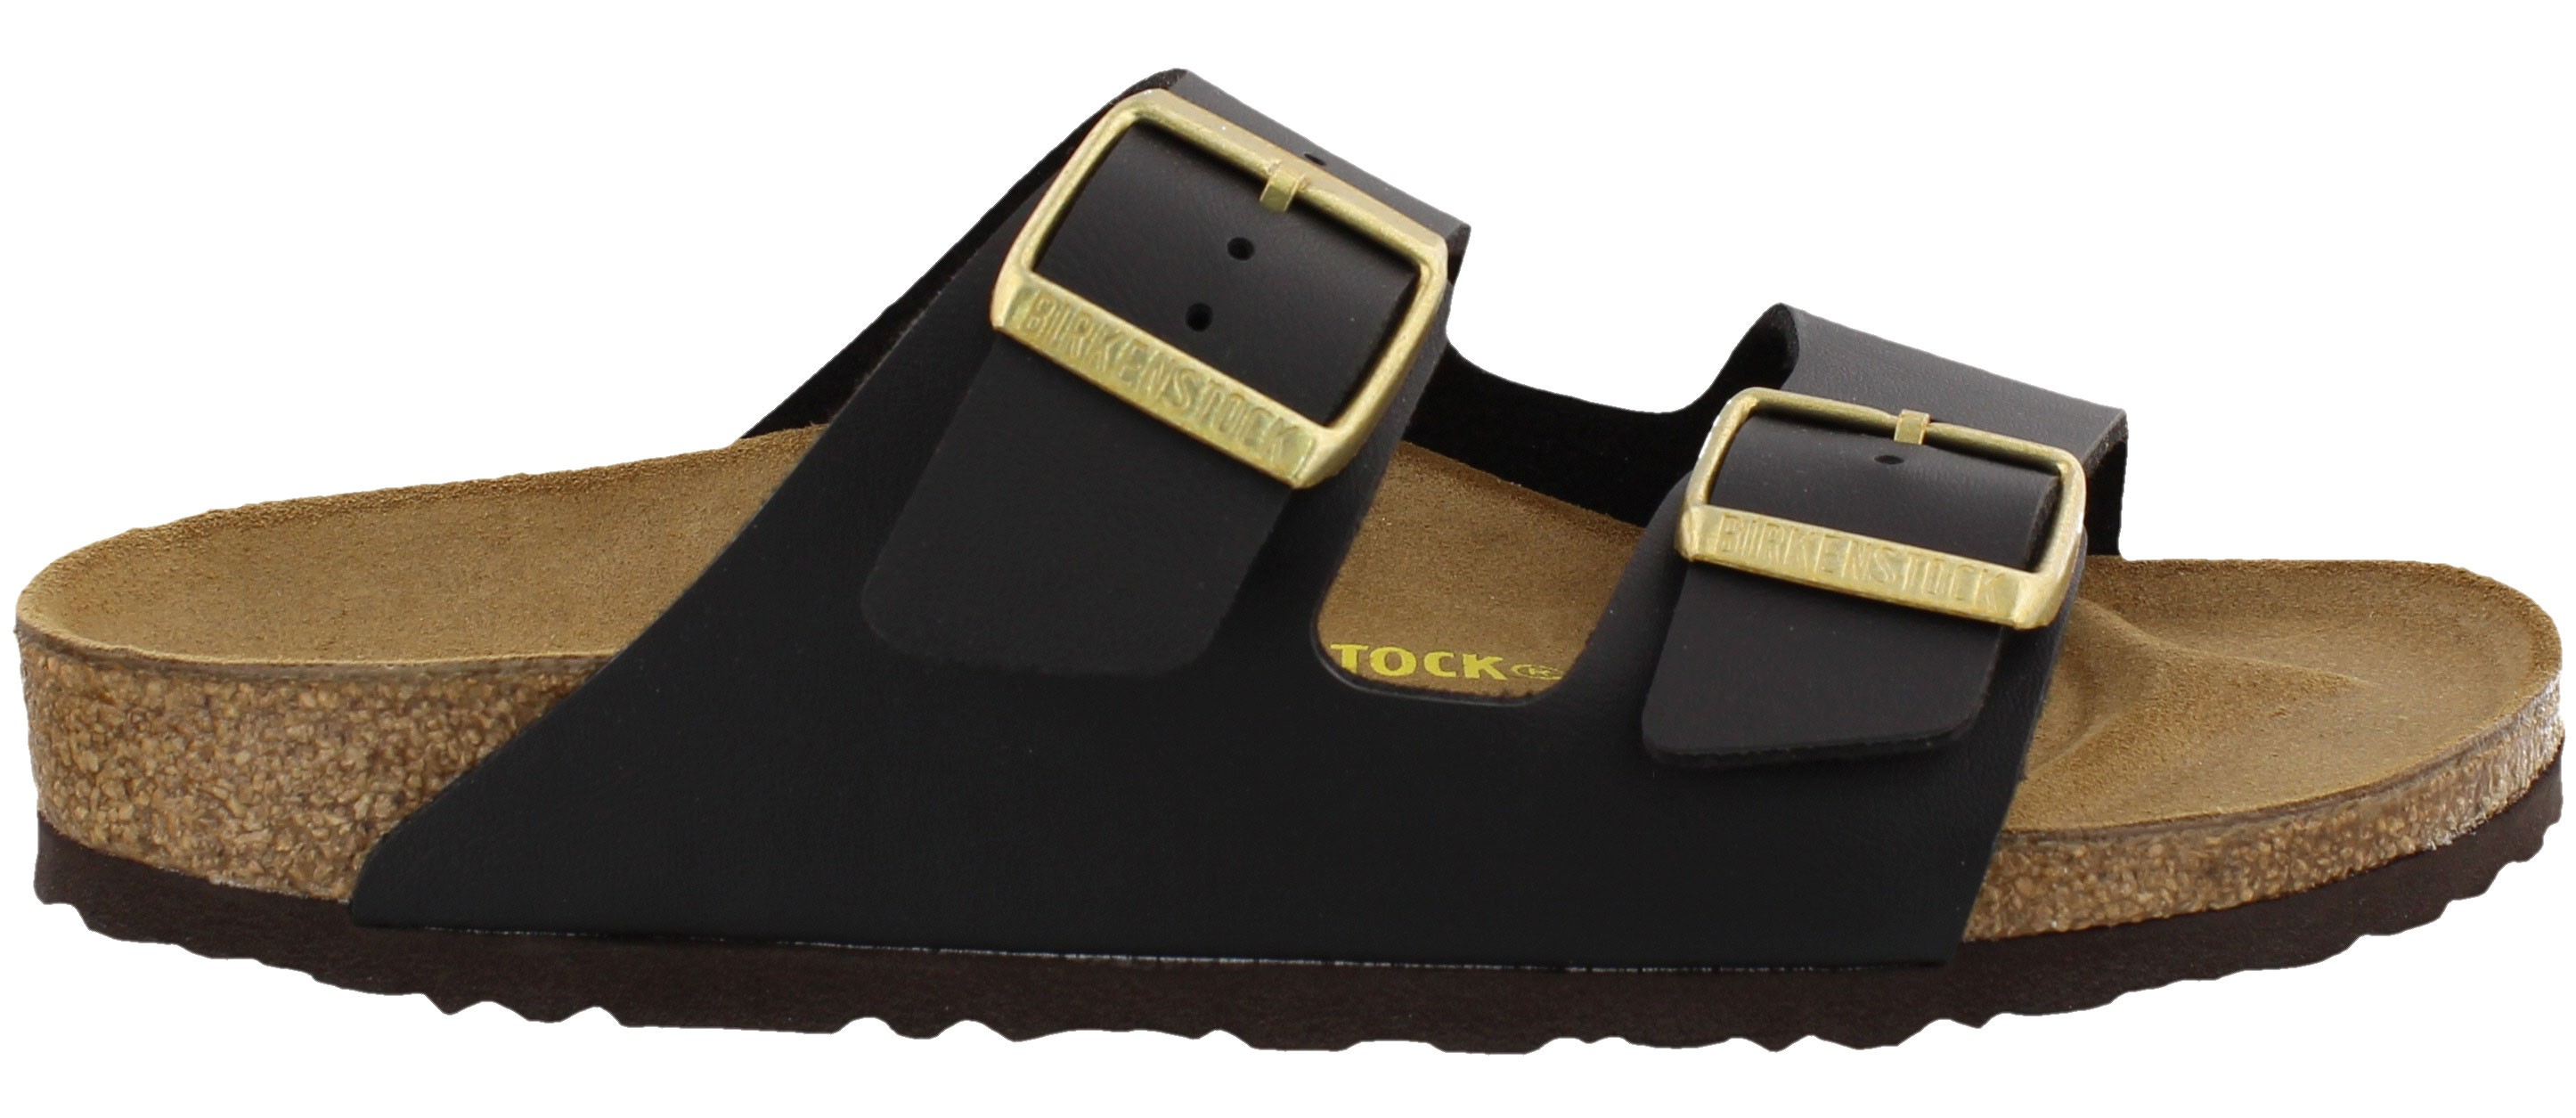 Birkenstock Arizona - black - Smalle fit